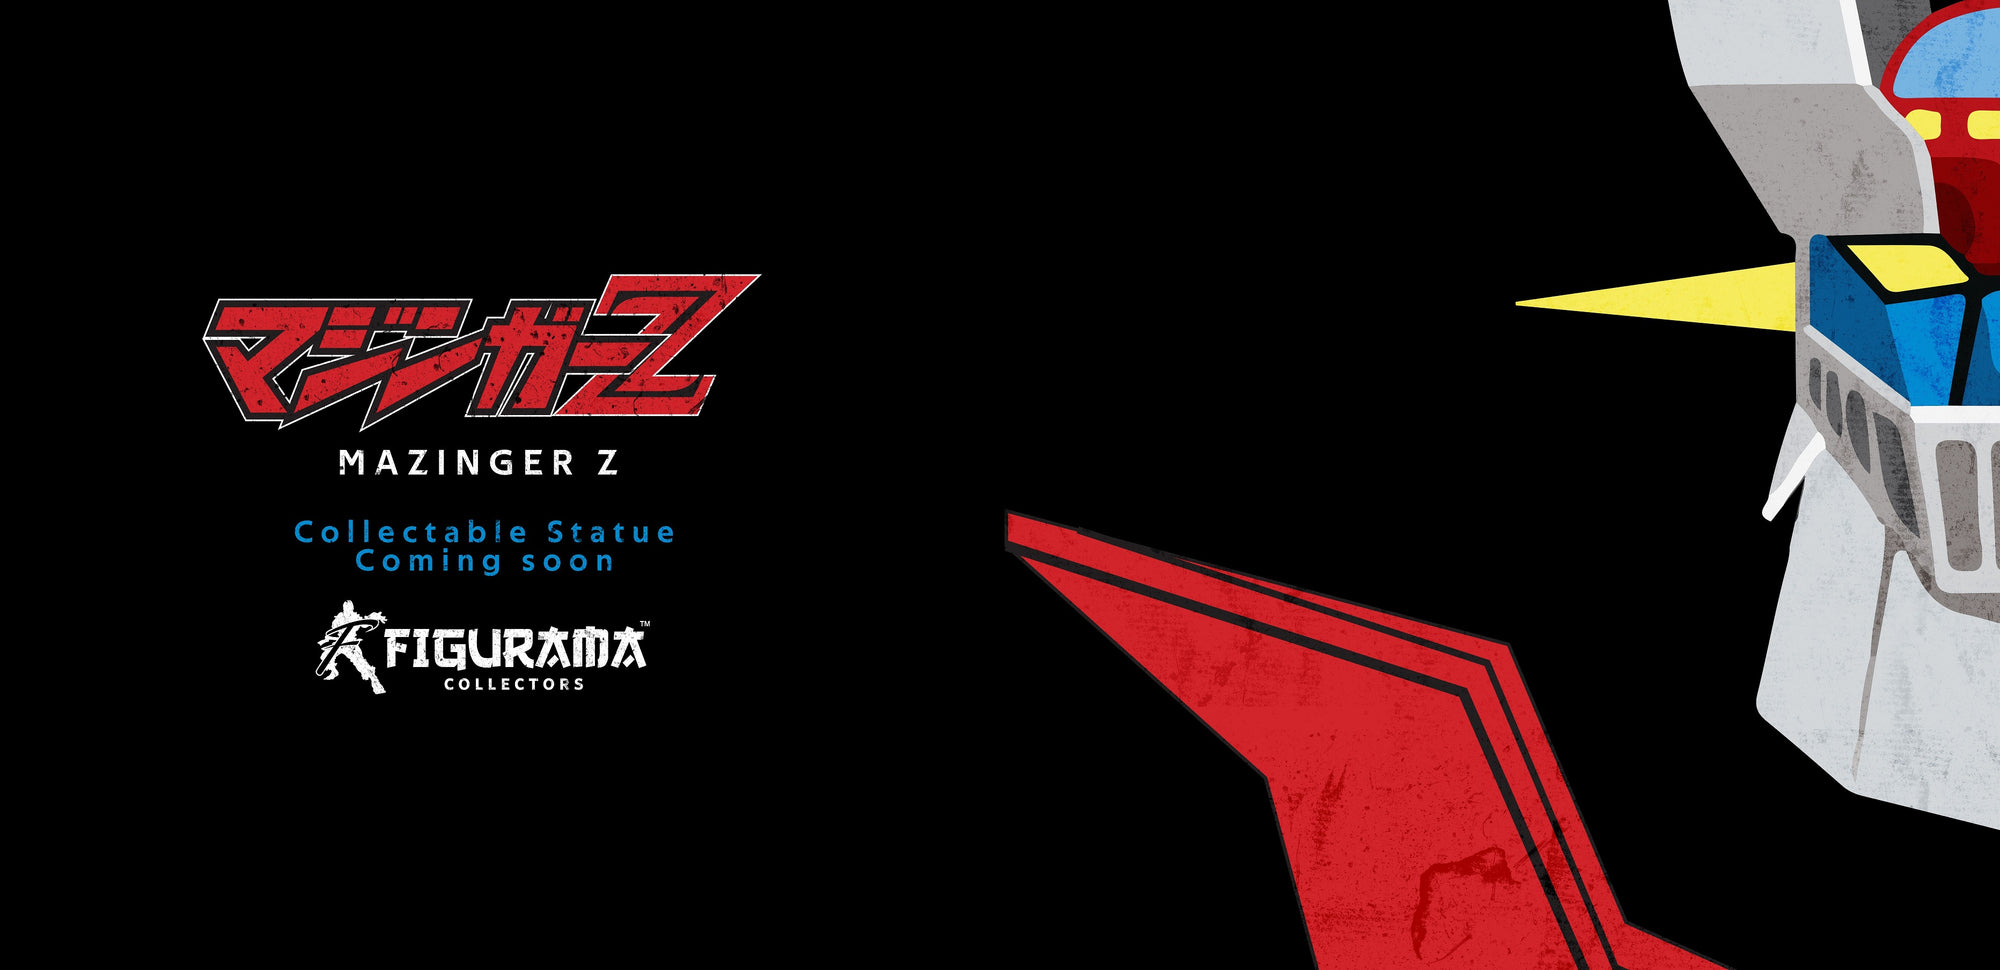 Figurama Collectors Reveals Ultimate Nostalgic License: MAZINGER Z!